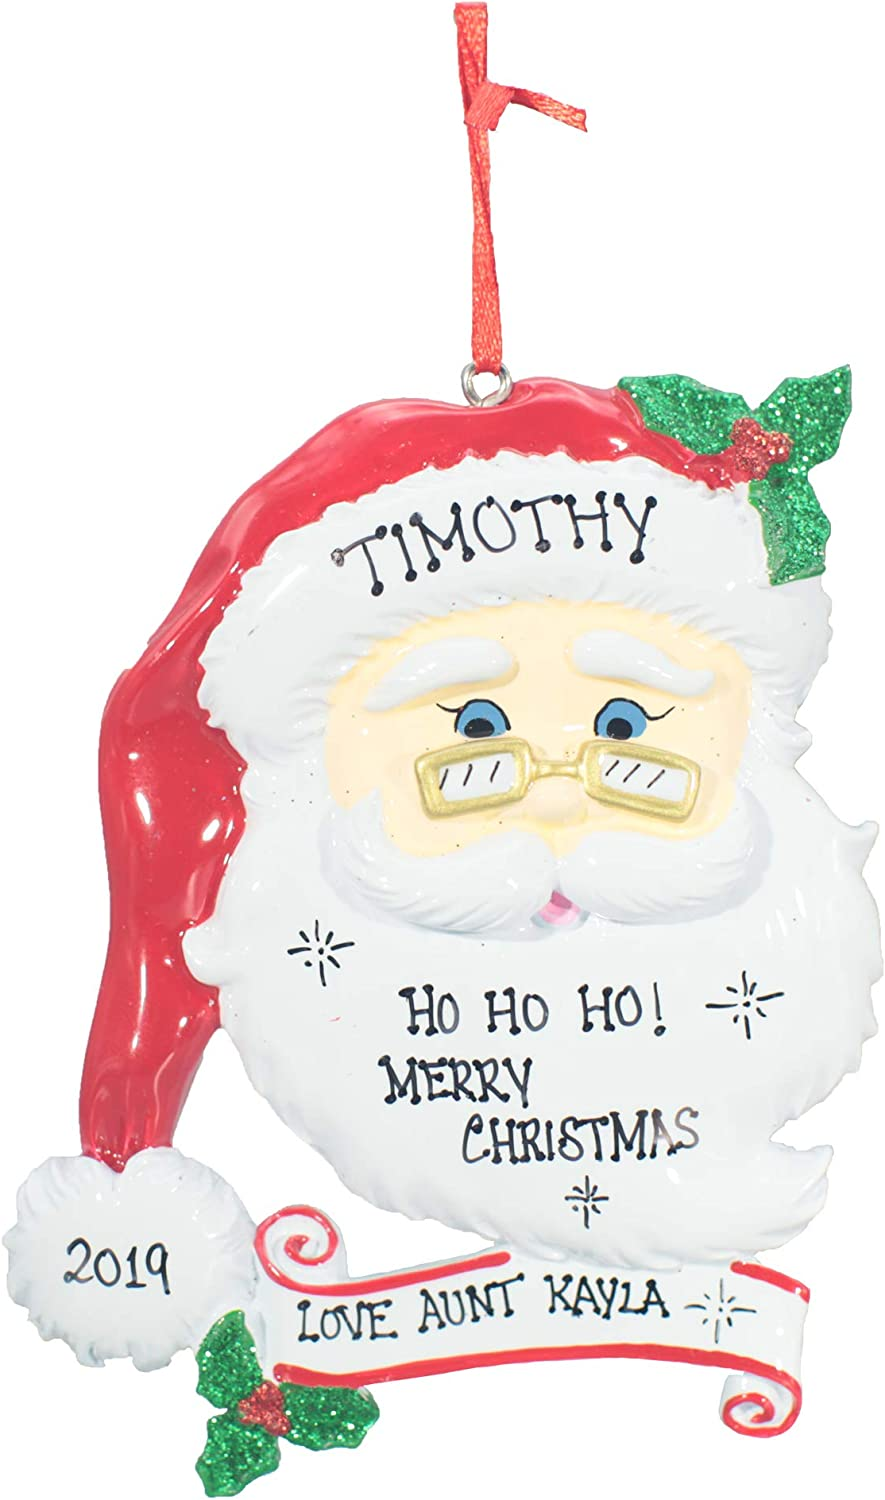 Personalized Christmas Tree Decoration Ornament 2020 – Traditional Home Décor – New Year Santa Gift - Holiday Fun w Hanging Hook - Jolly Santa - Free Customization